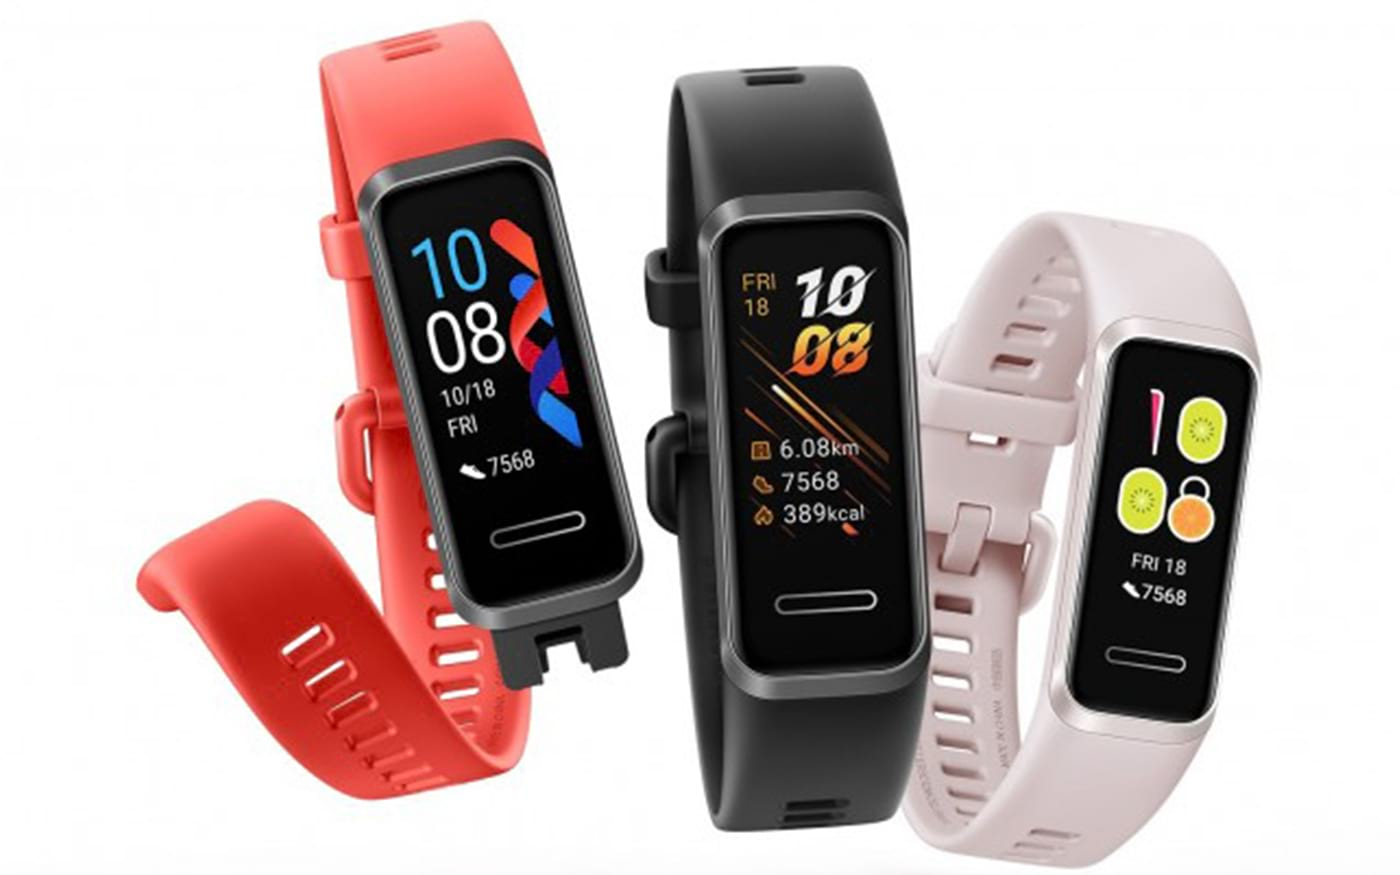 Huawei Band 4 é anunciada com tela colorida e carregamento via USB-A